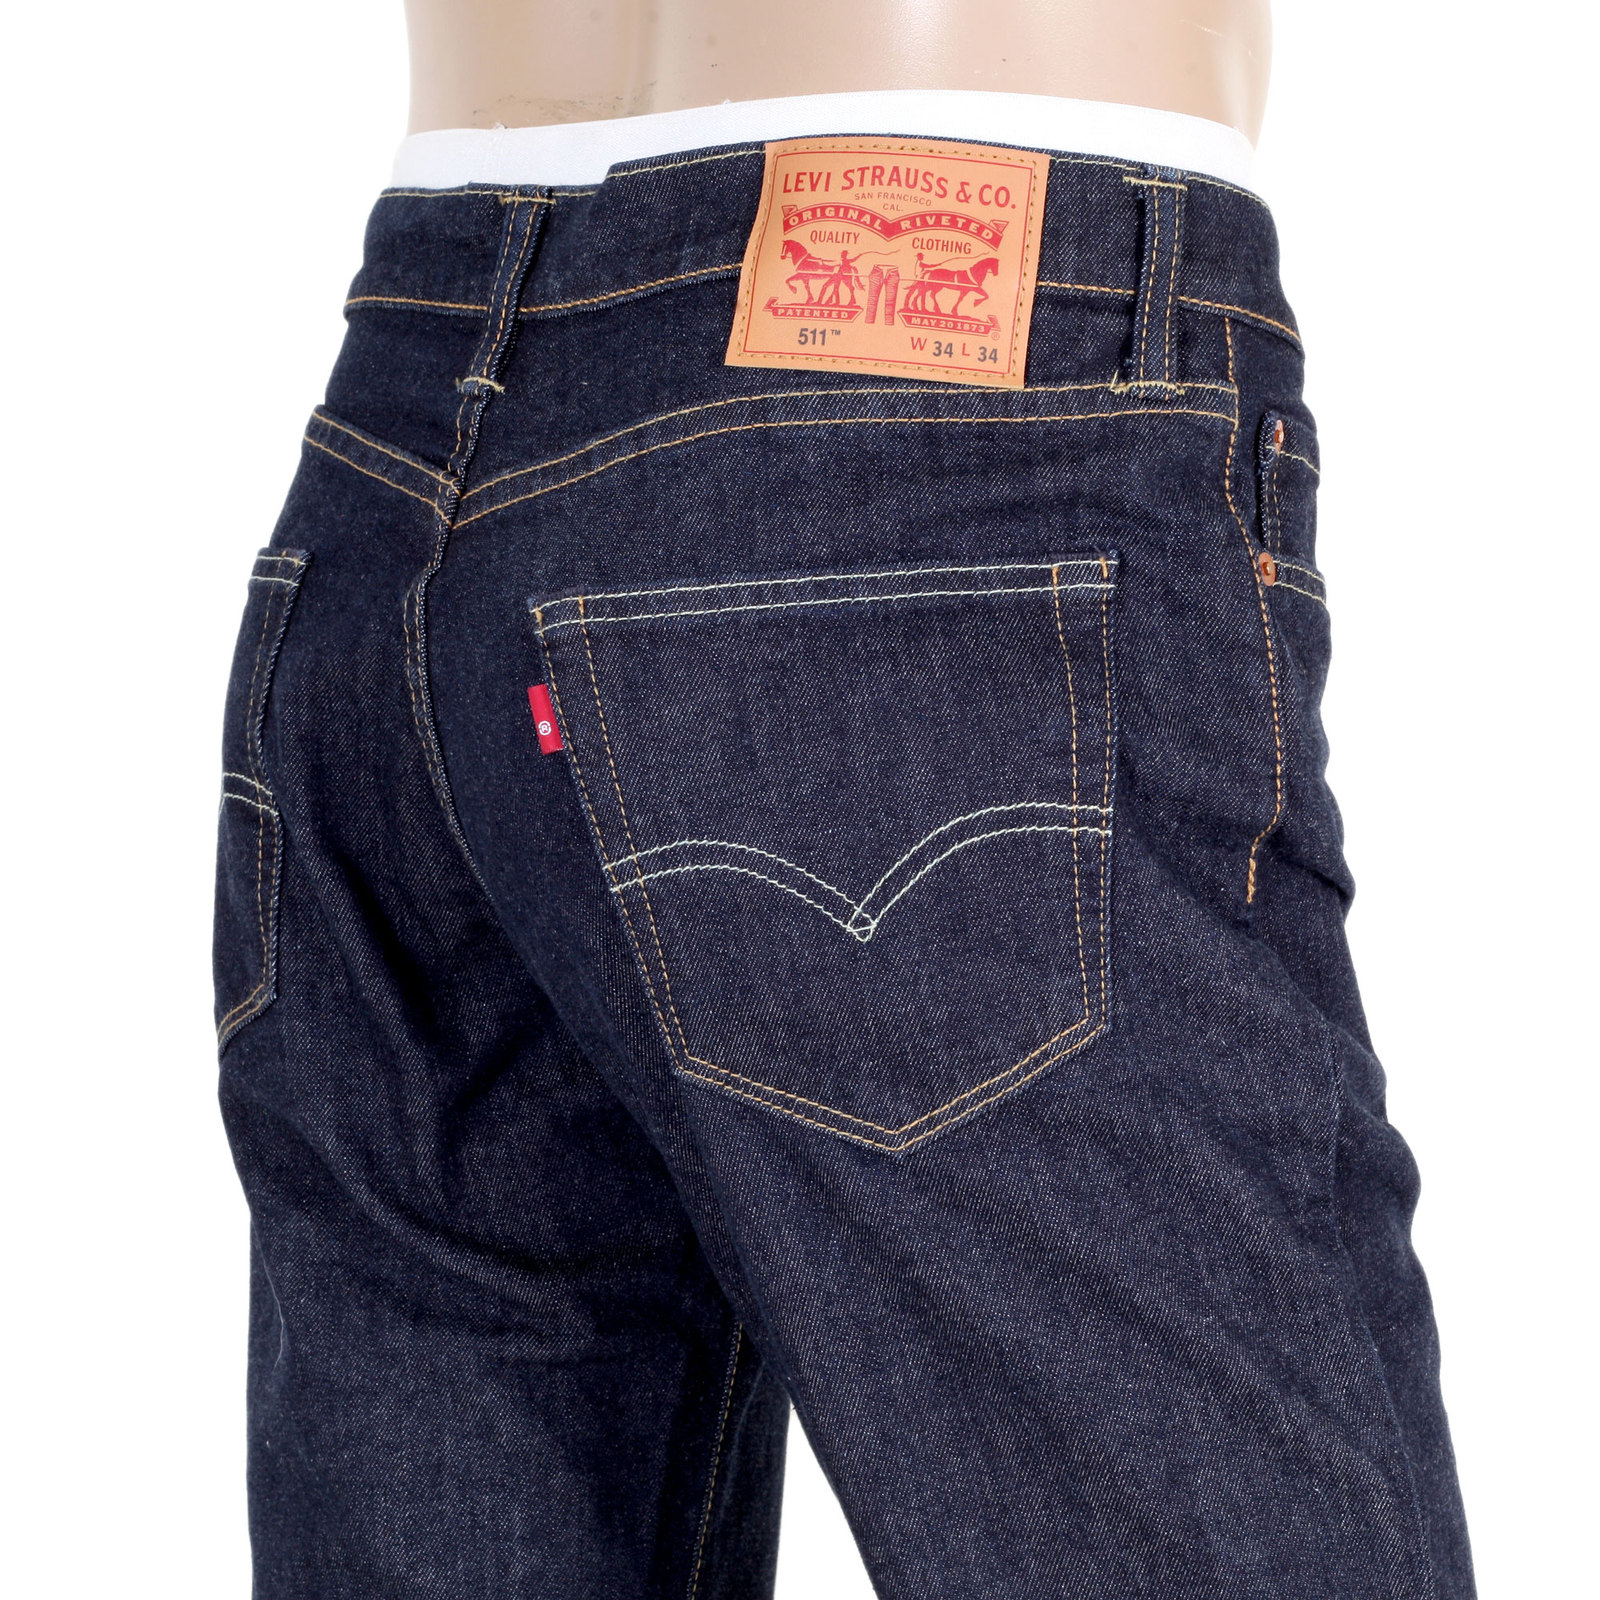 Mens Dark Blue Levis 511 Slim Fit Jeans with Low Waist